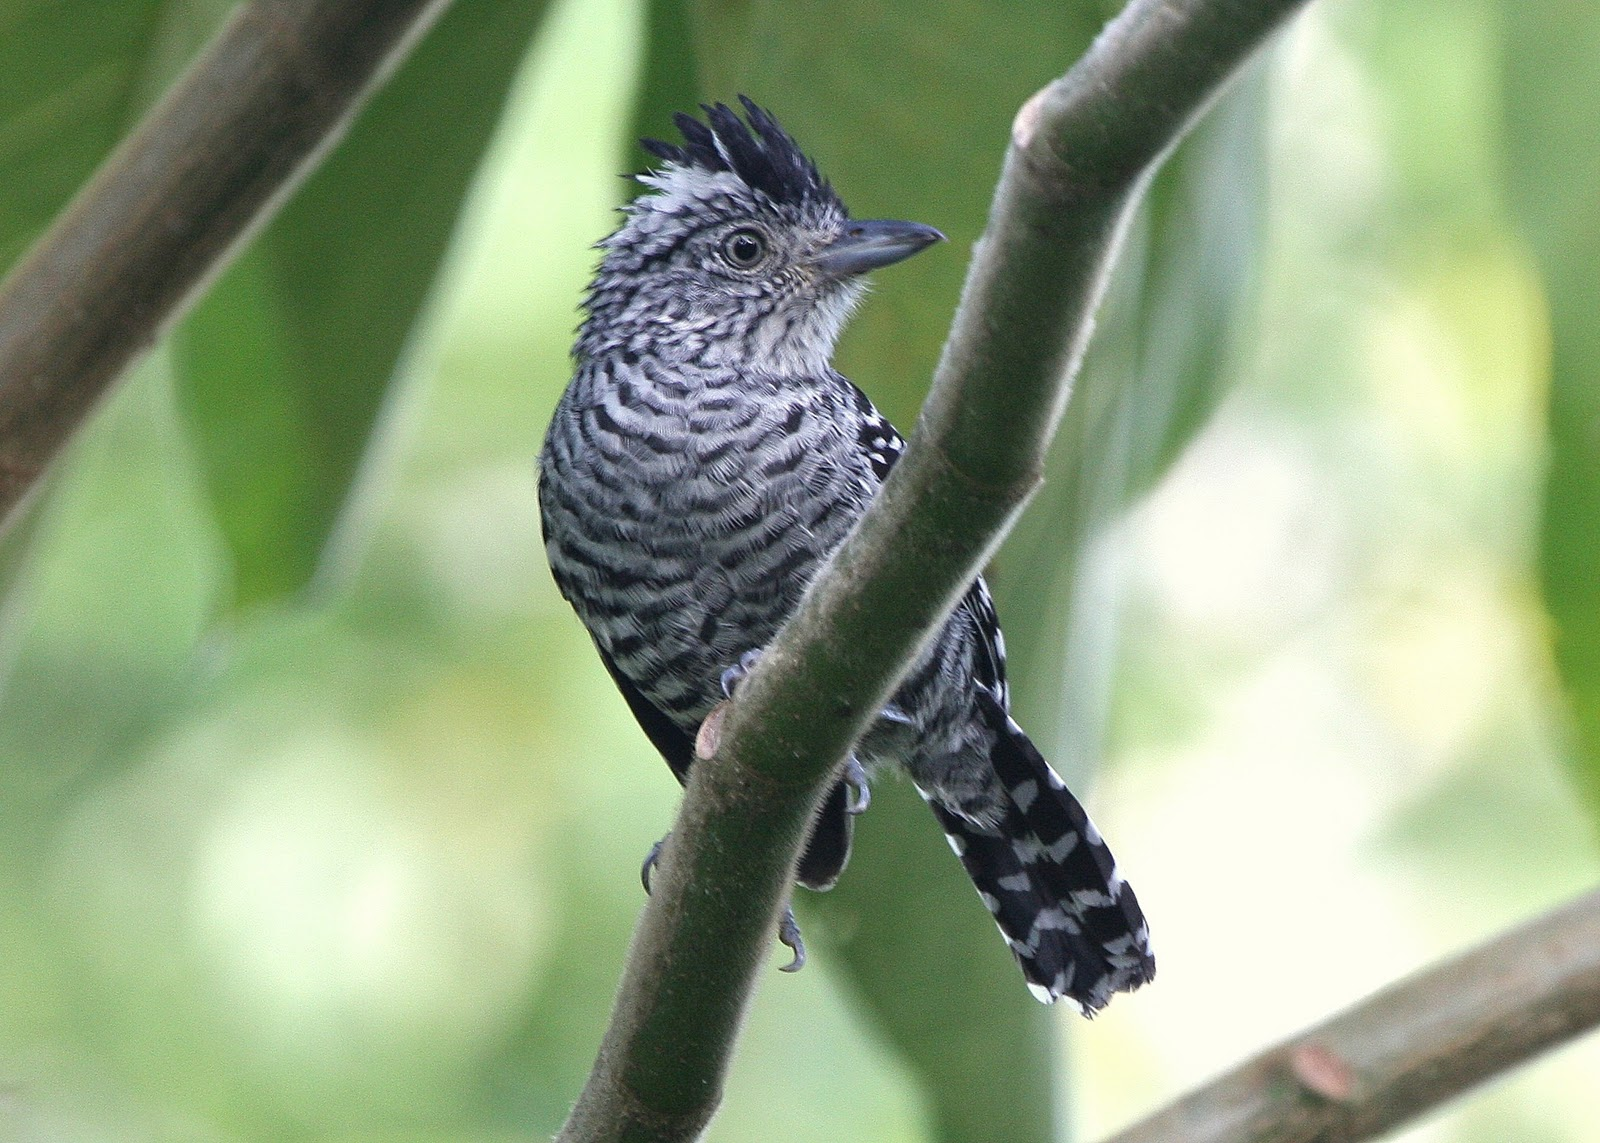 Cute Barred Antshrike